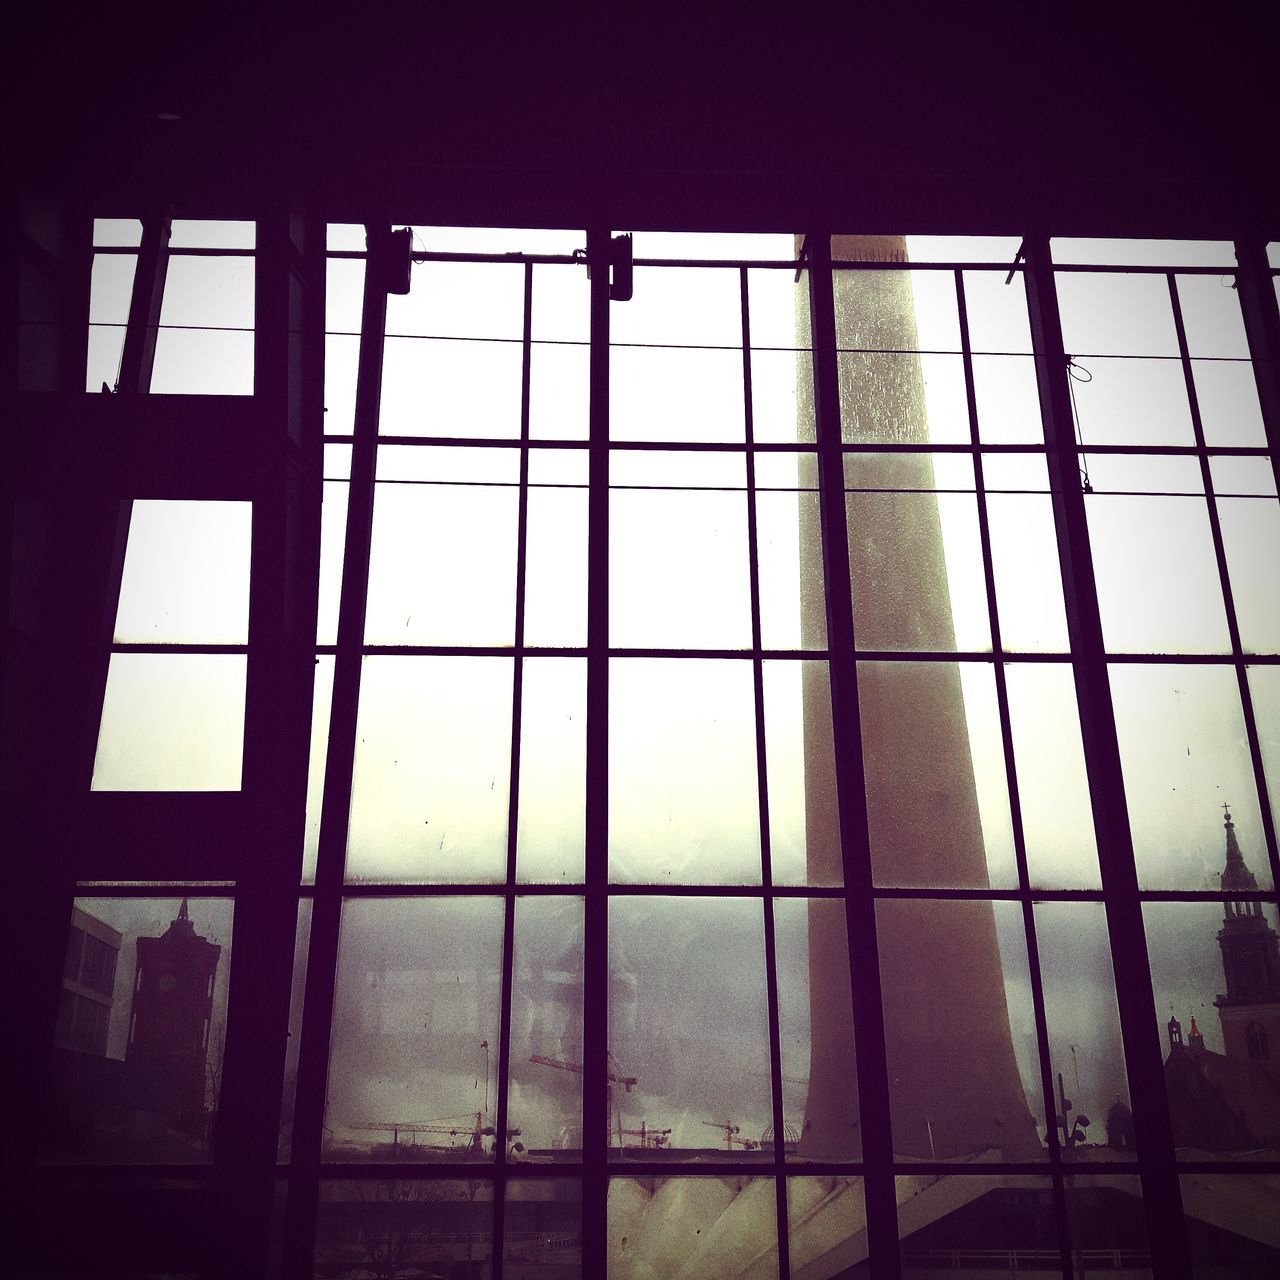 window, indoors, no people, day, low angle view, architecture, sky, close-up